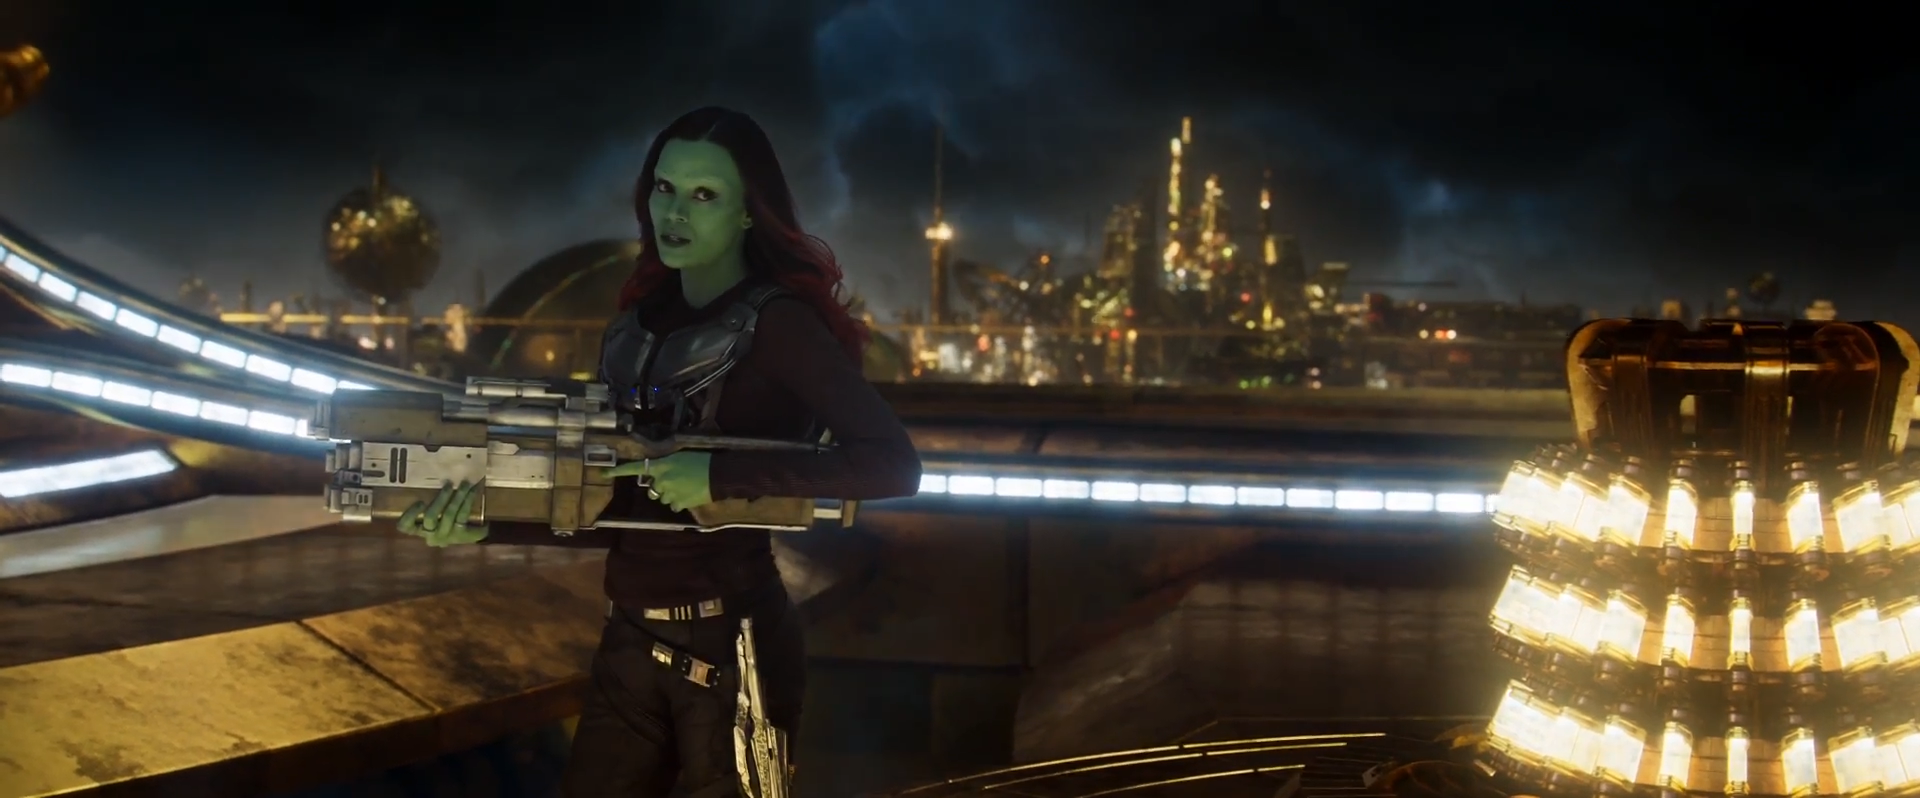 Gamora understands that even for a specialist you must be well-rounded - Screenshot from Guardians of the Galaxy Vol. 2 (2017) trailer